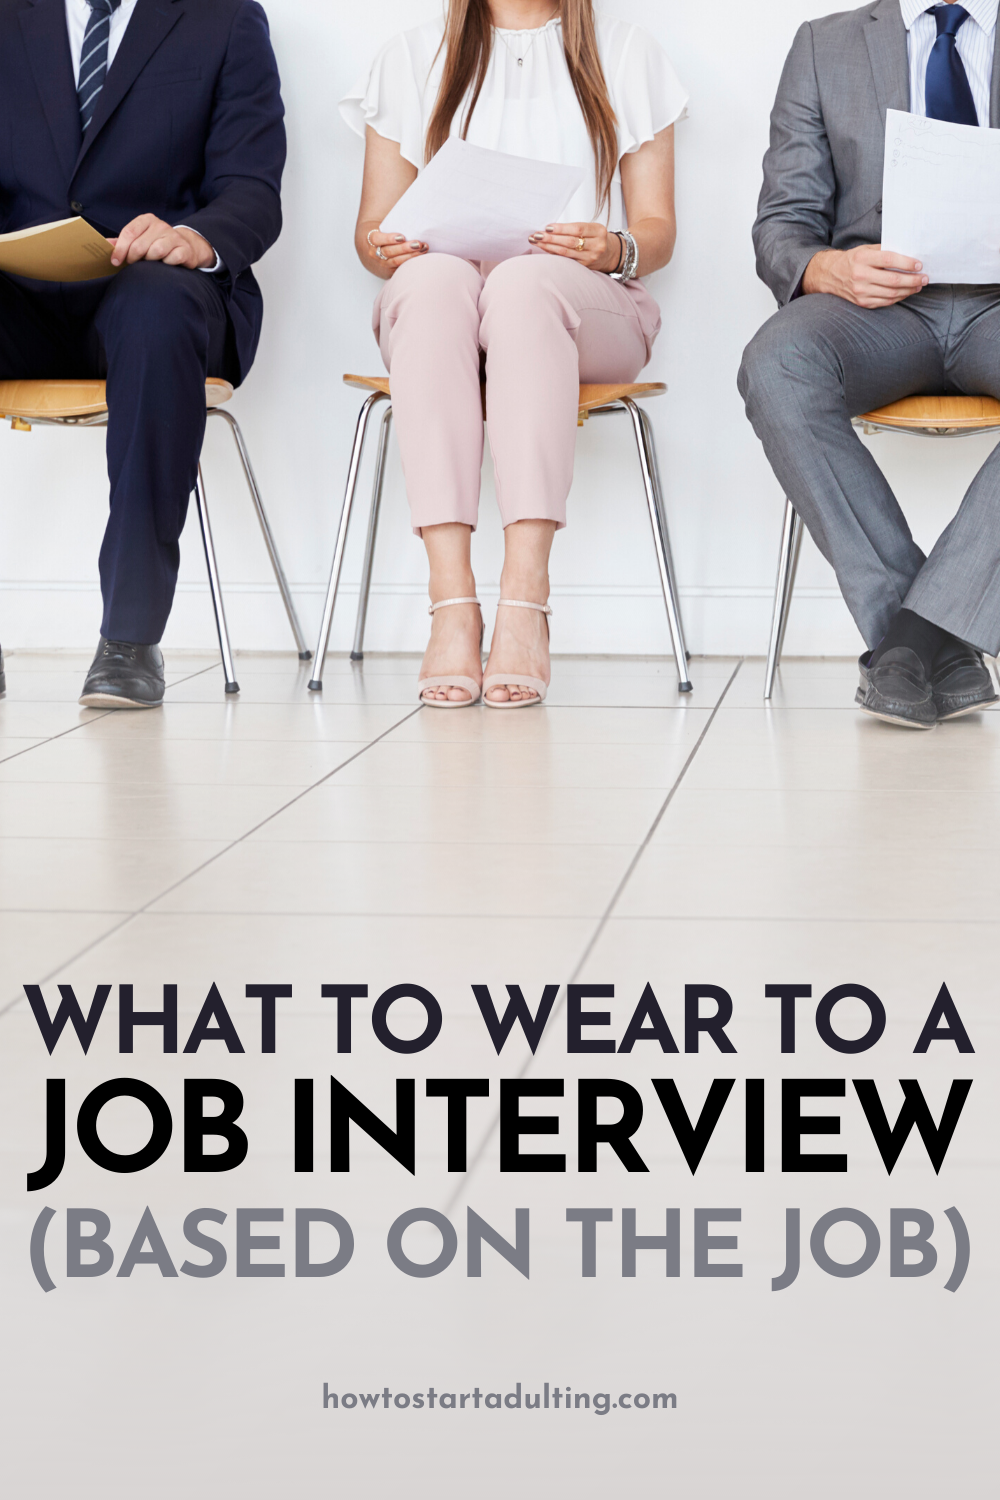 What You Should Wear To An Interview (Based On The Job) #jobinterview #jobinterviewtips #interviewtips #interviewoutfit #interviewoutfits #businesscasual #workclothes